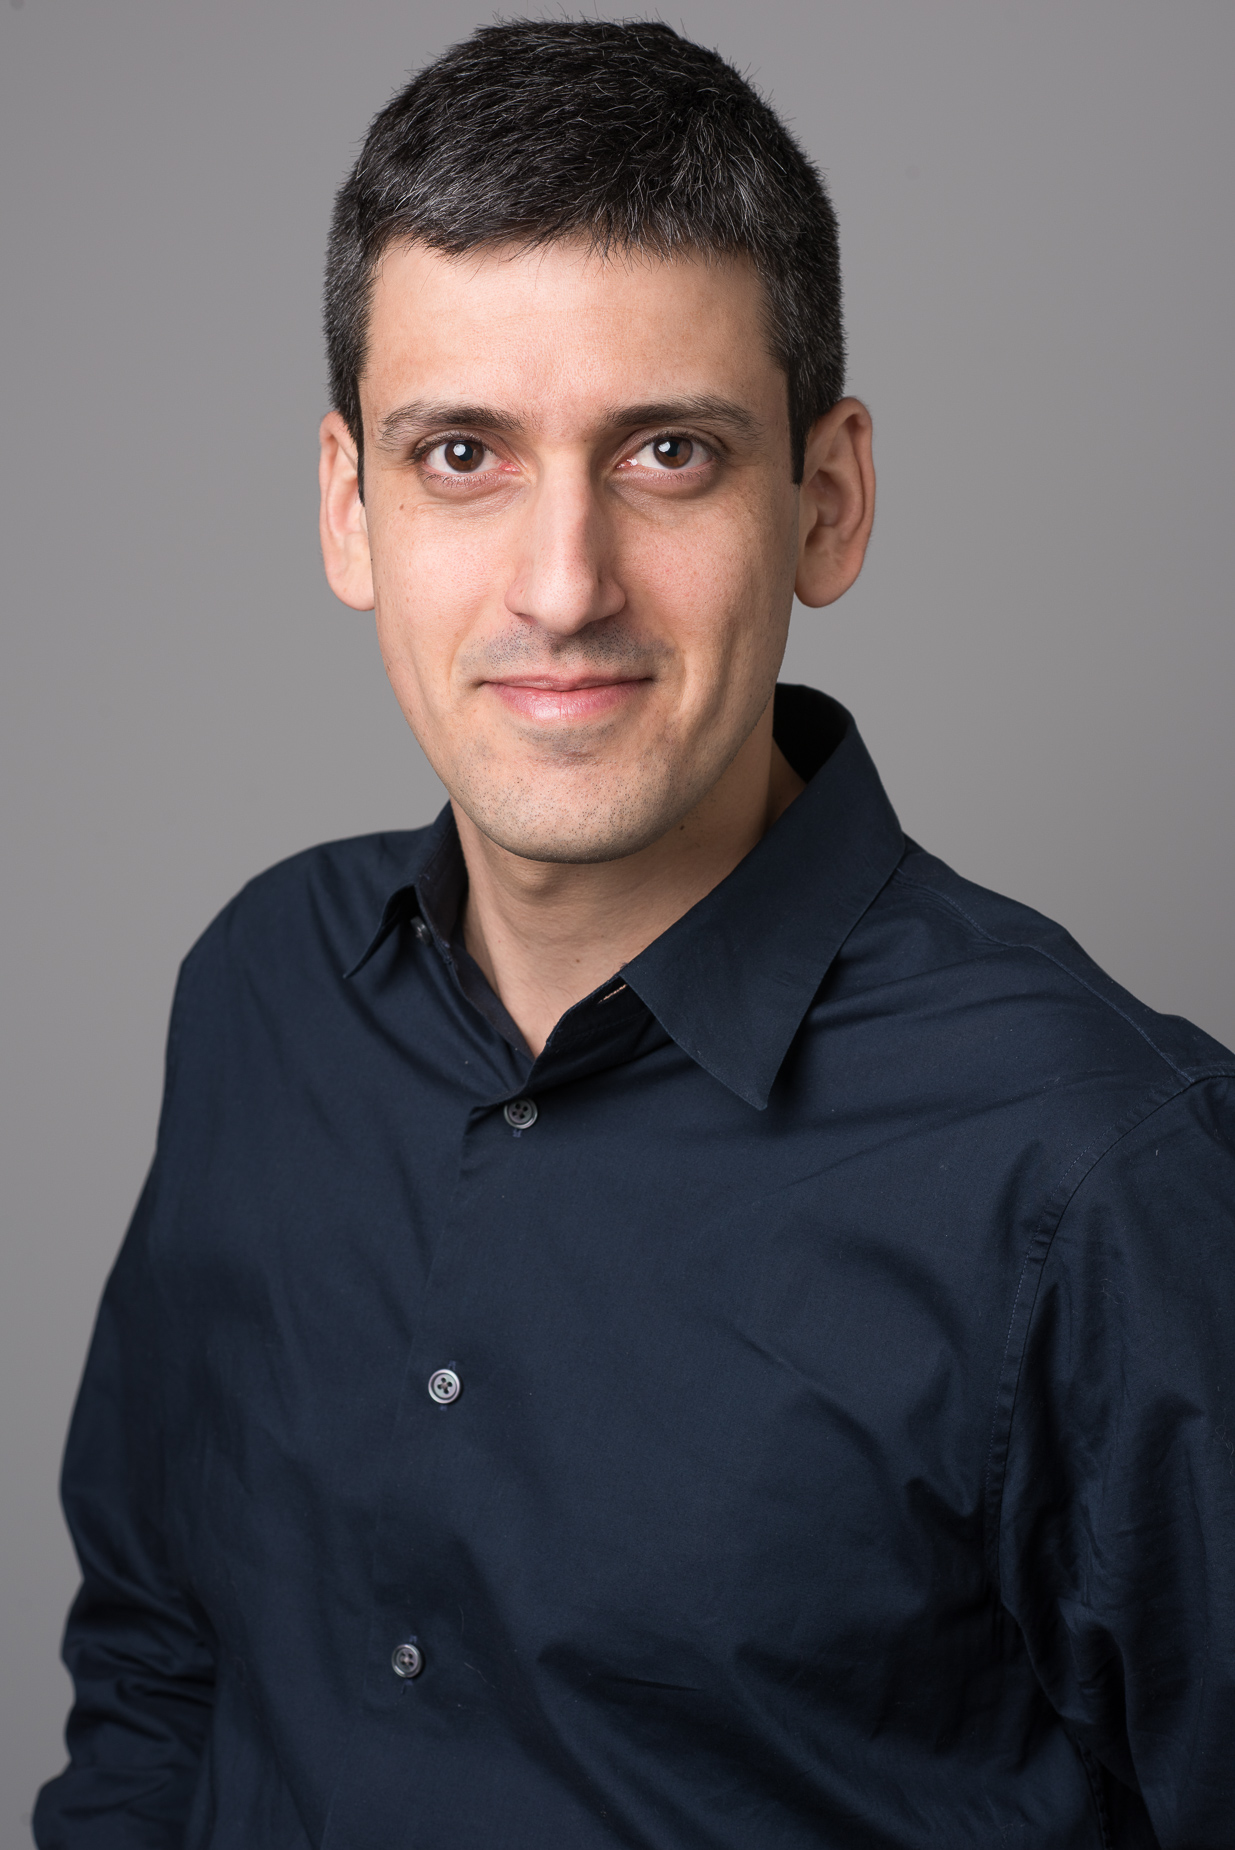 Corporate Headshot of Yoav Naveh, Vice President of video at the Taboola offices, New York City